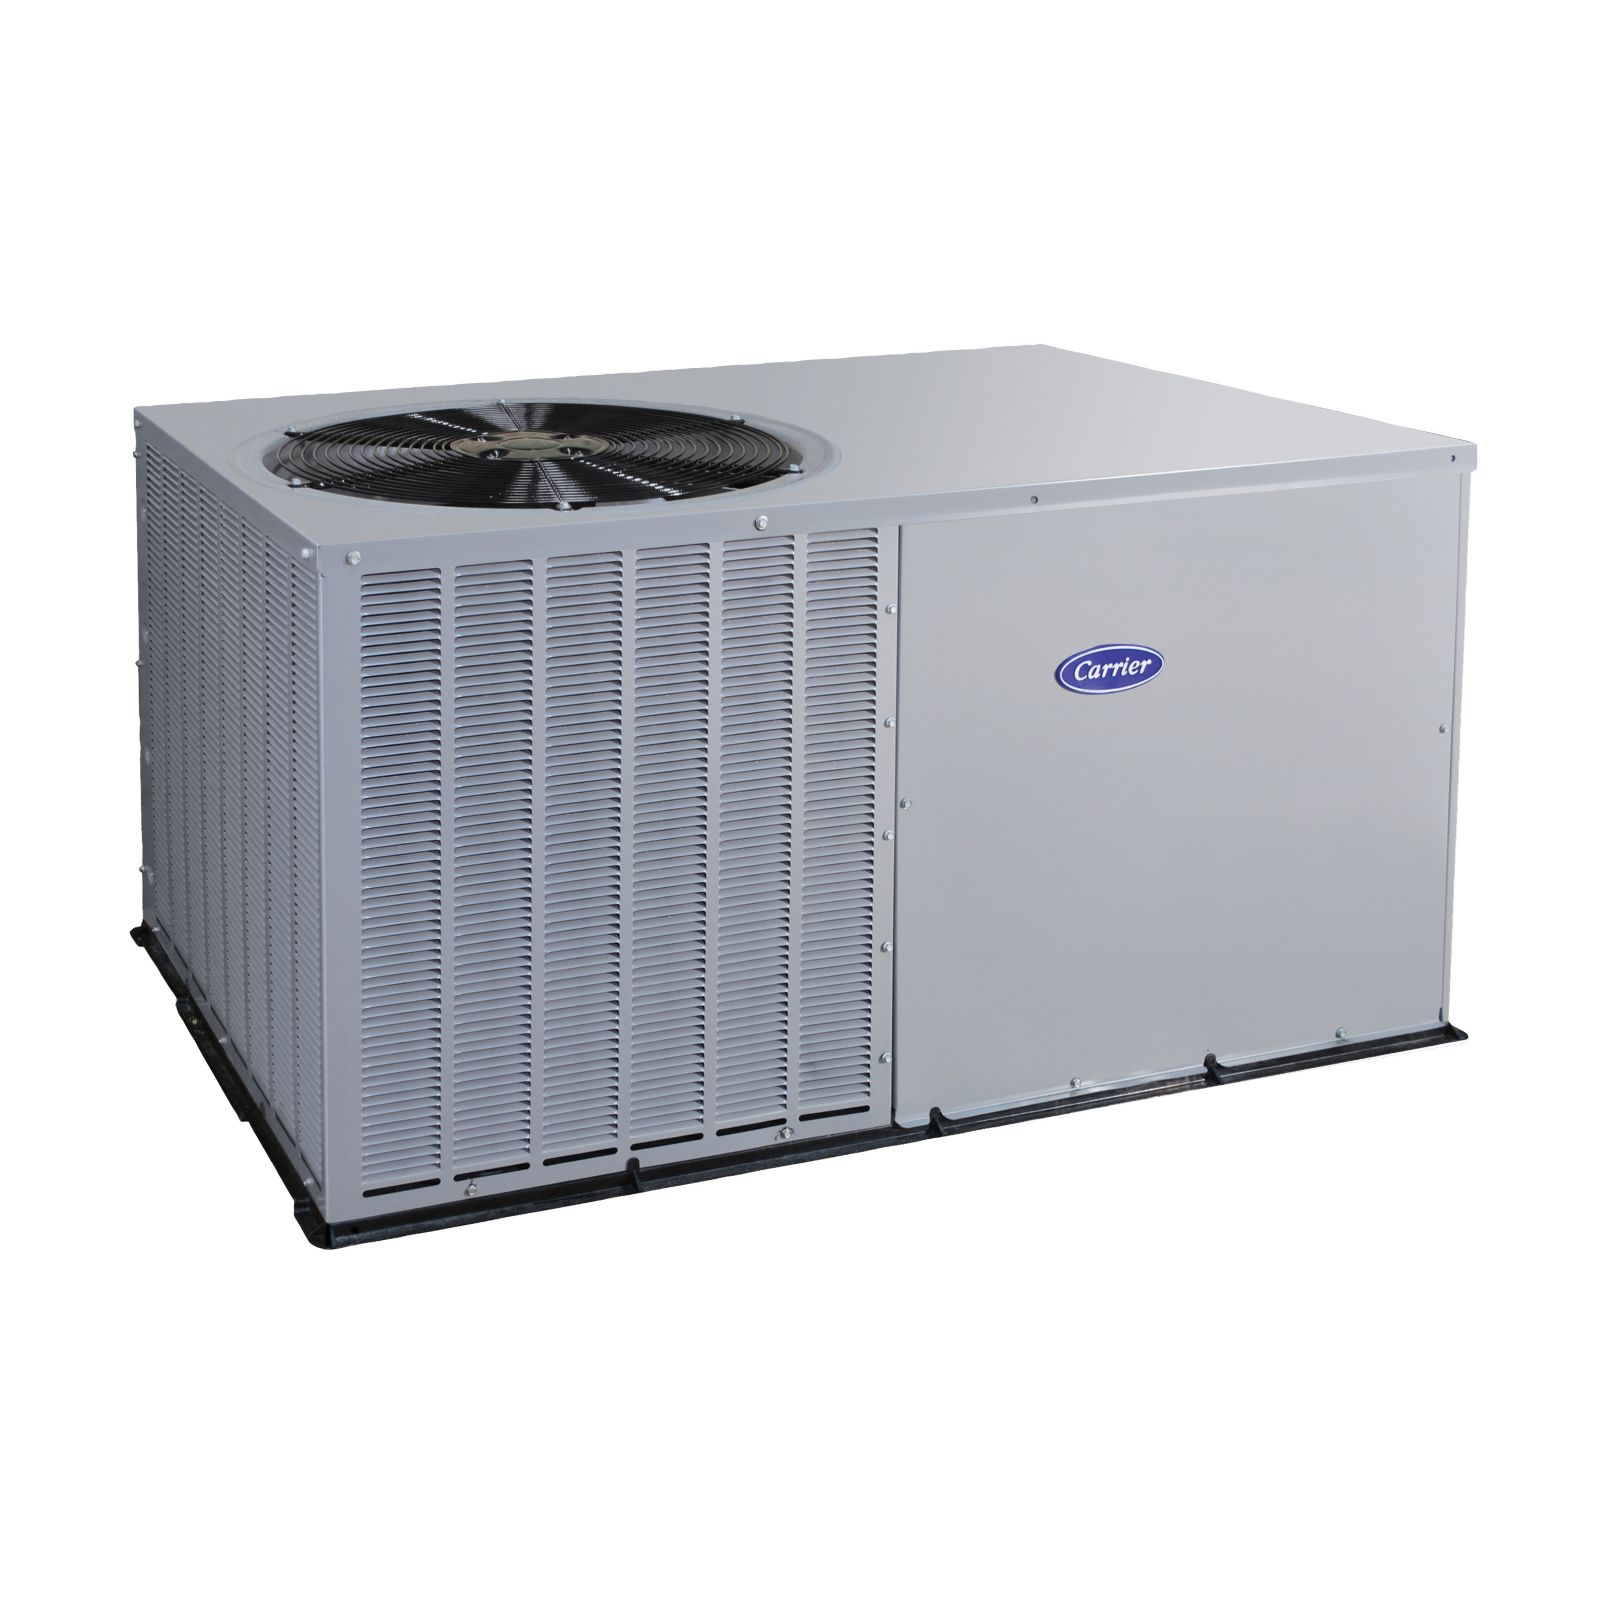 carrier packaged air conditioner 3 ton 14 seer | carrier hvac